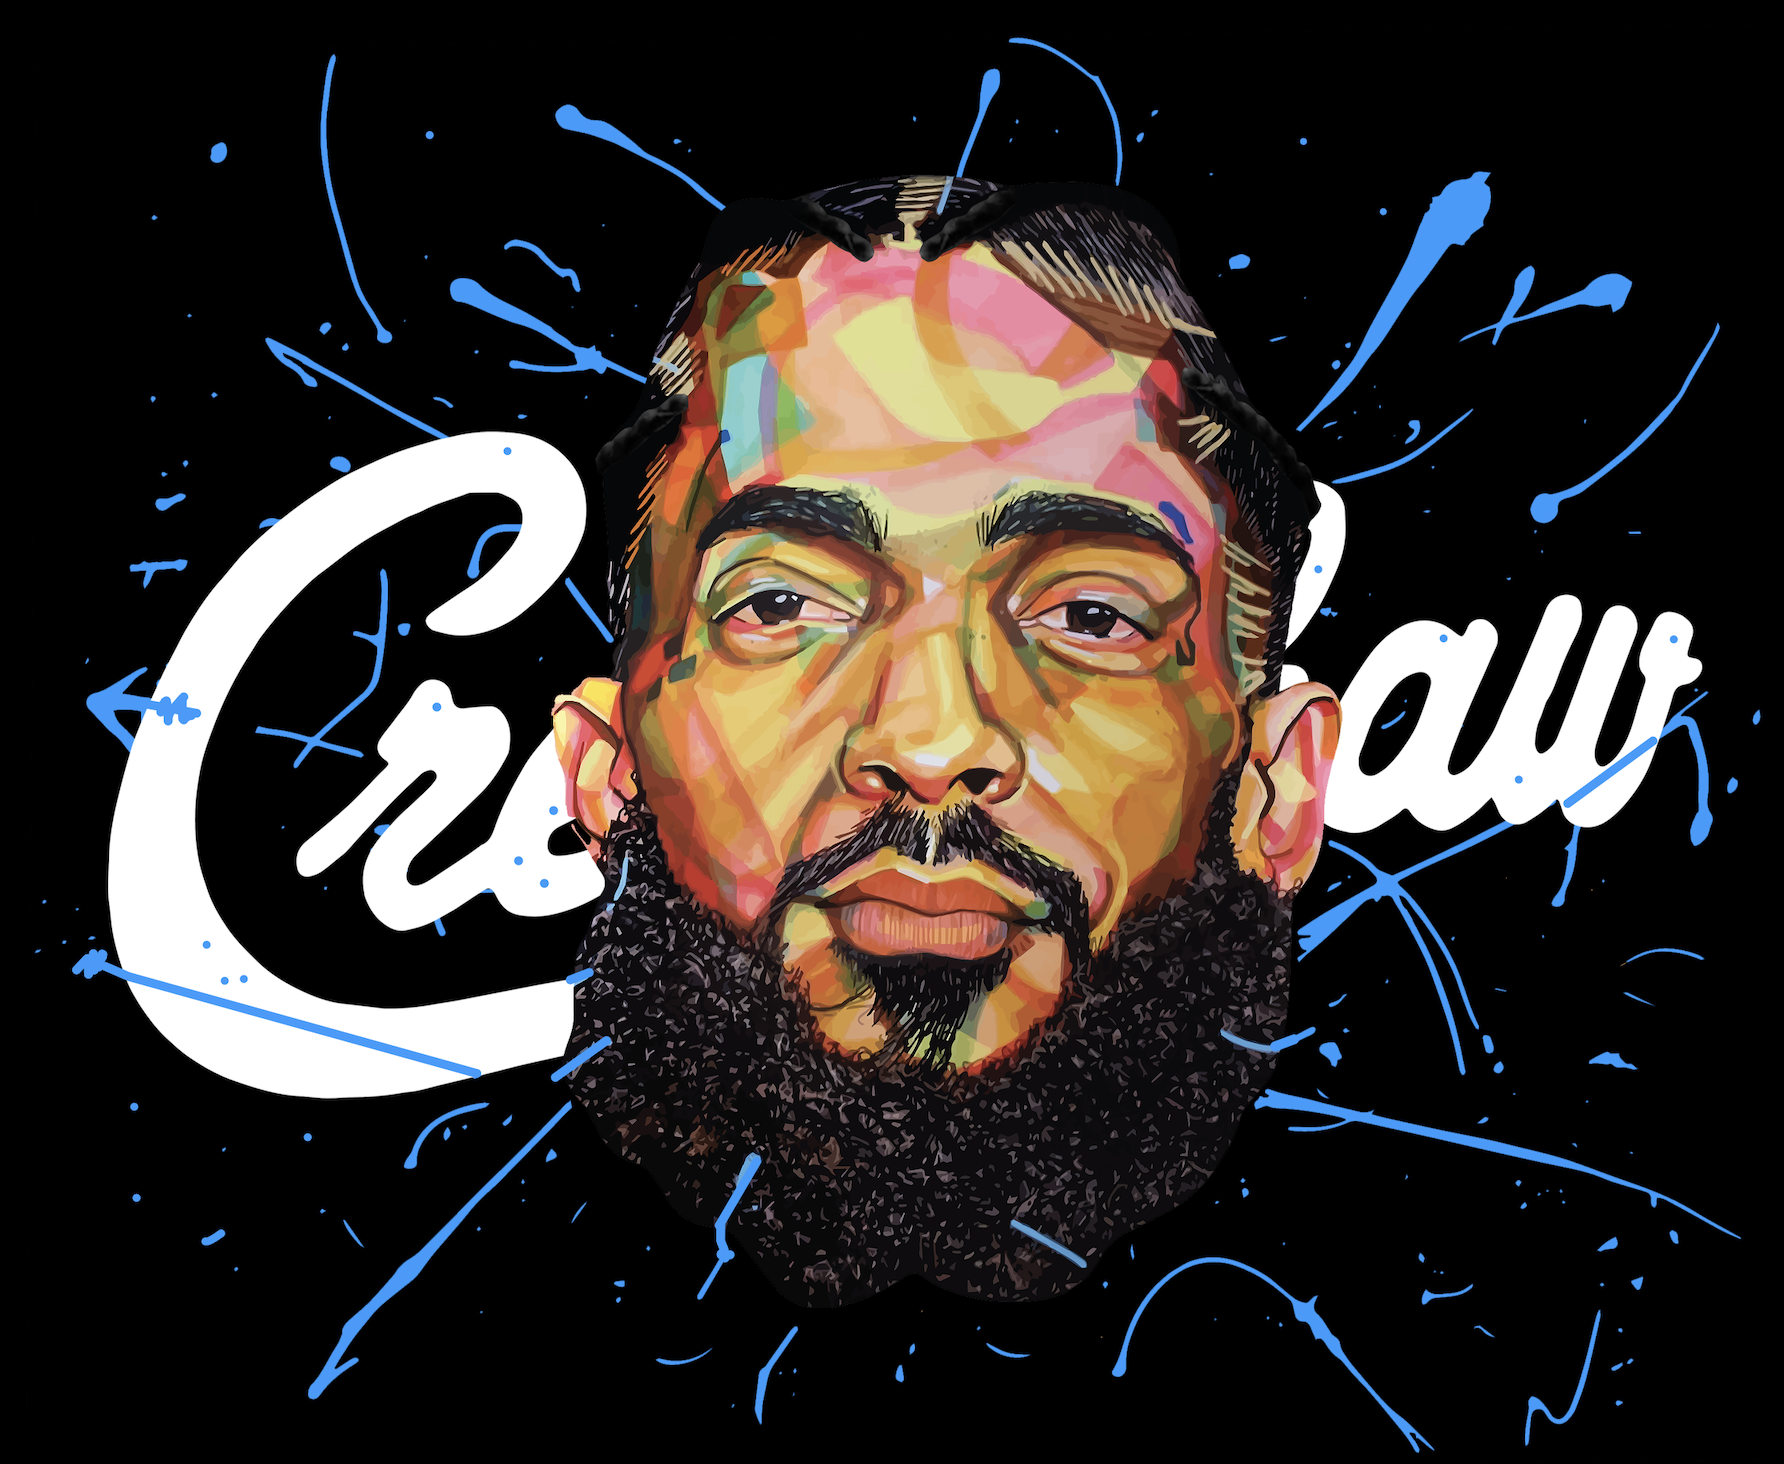 Tribute Art Piece Of the Late Nipsey Hussle. 22x28 on